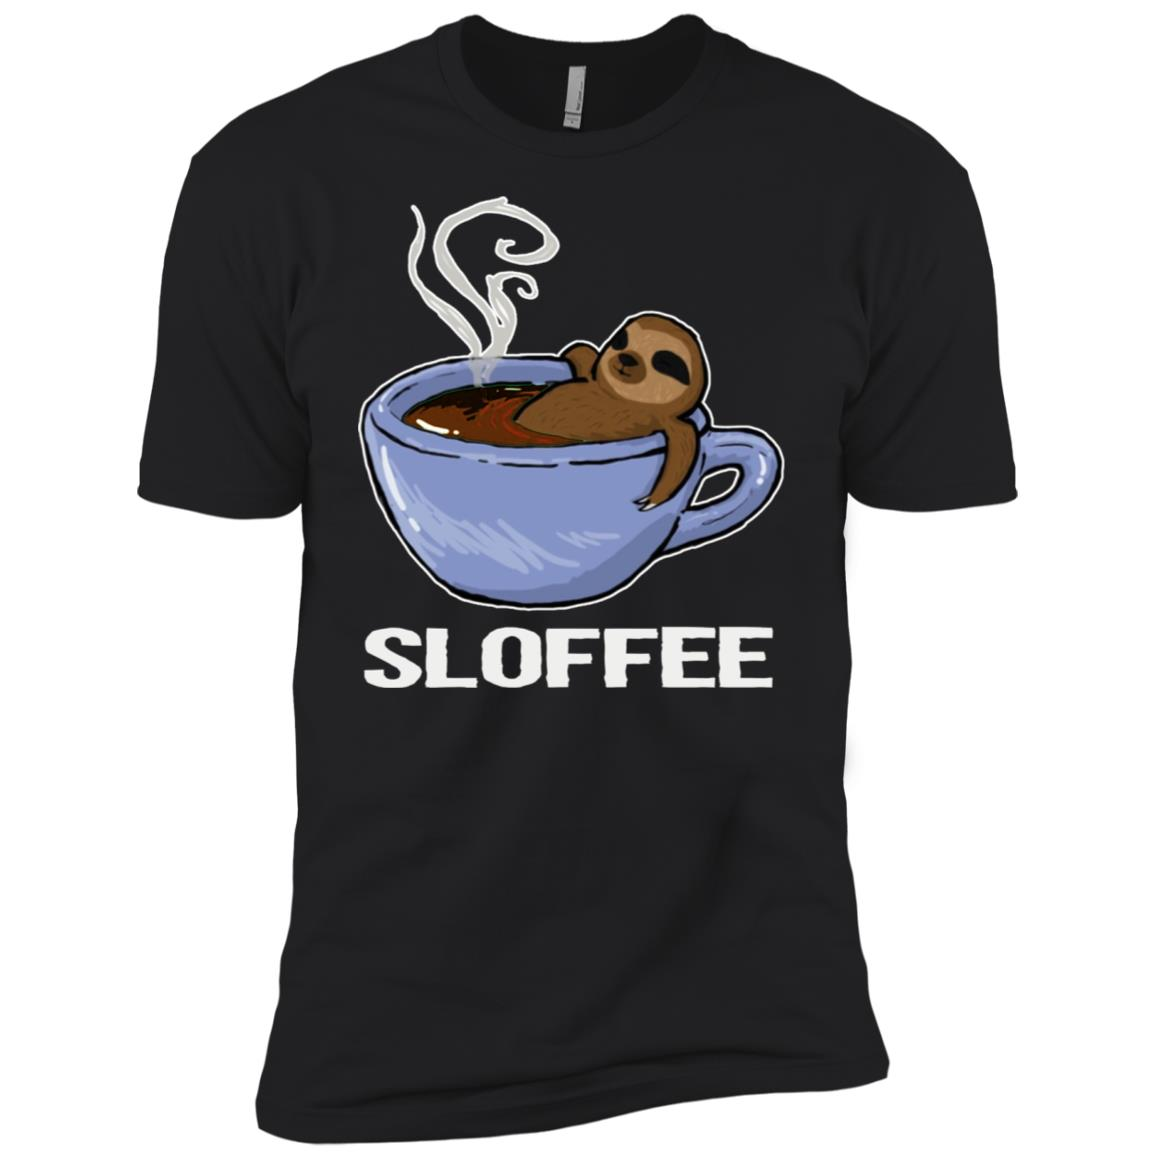 Sloffee Tees Funny Coffee Lover Sloth Lover Men Short Sleeve T-Shirt